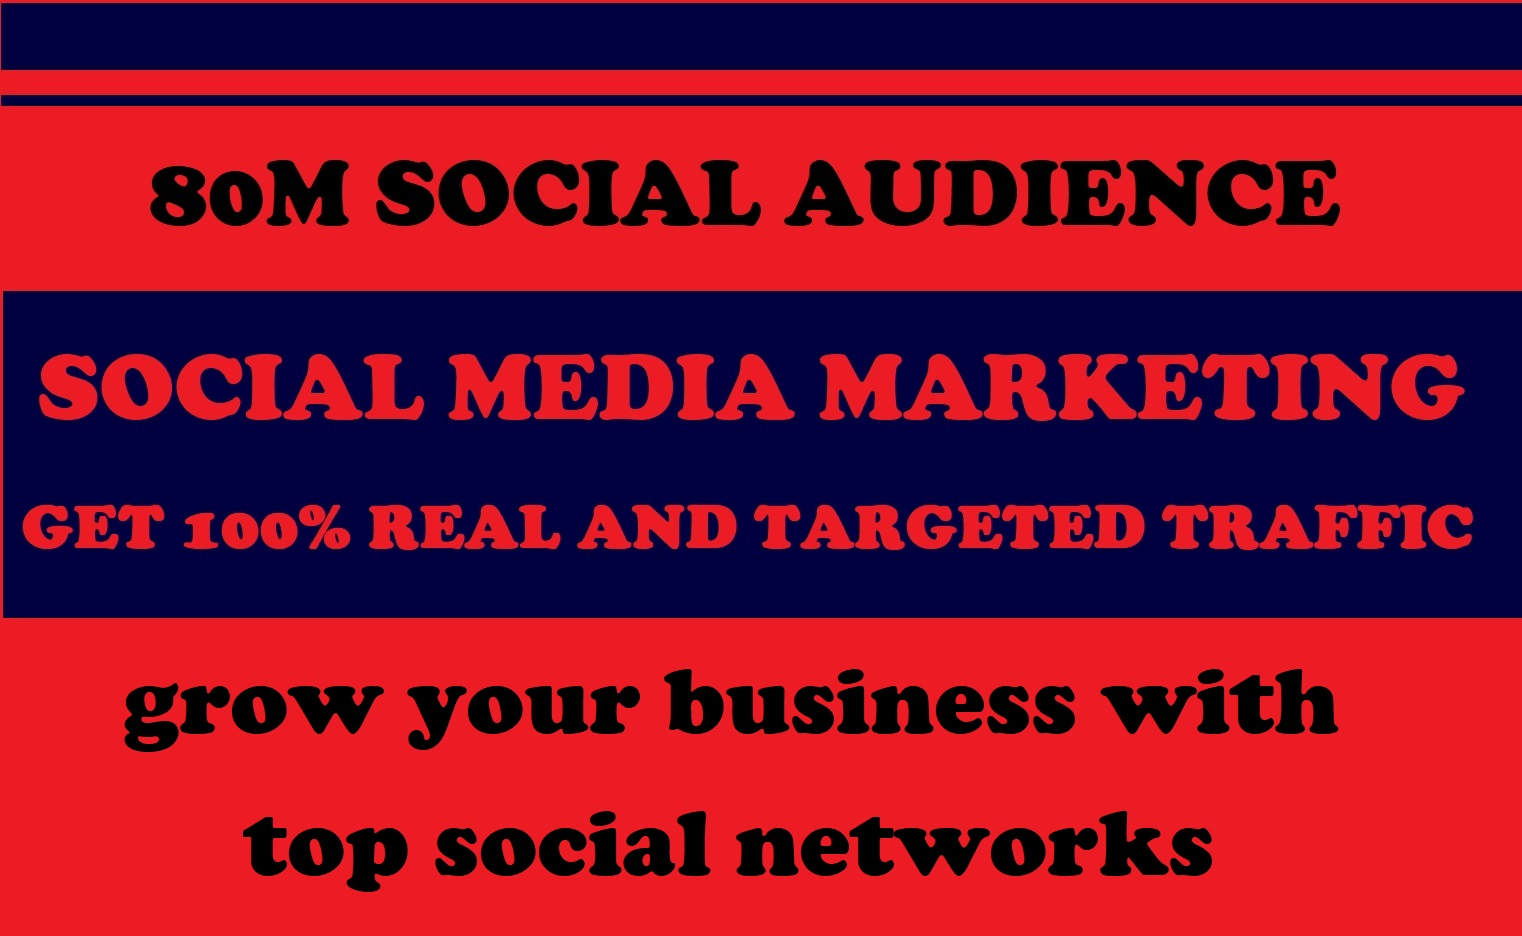 80 million audience social media communities  promote your links on top 7 networks